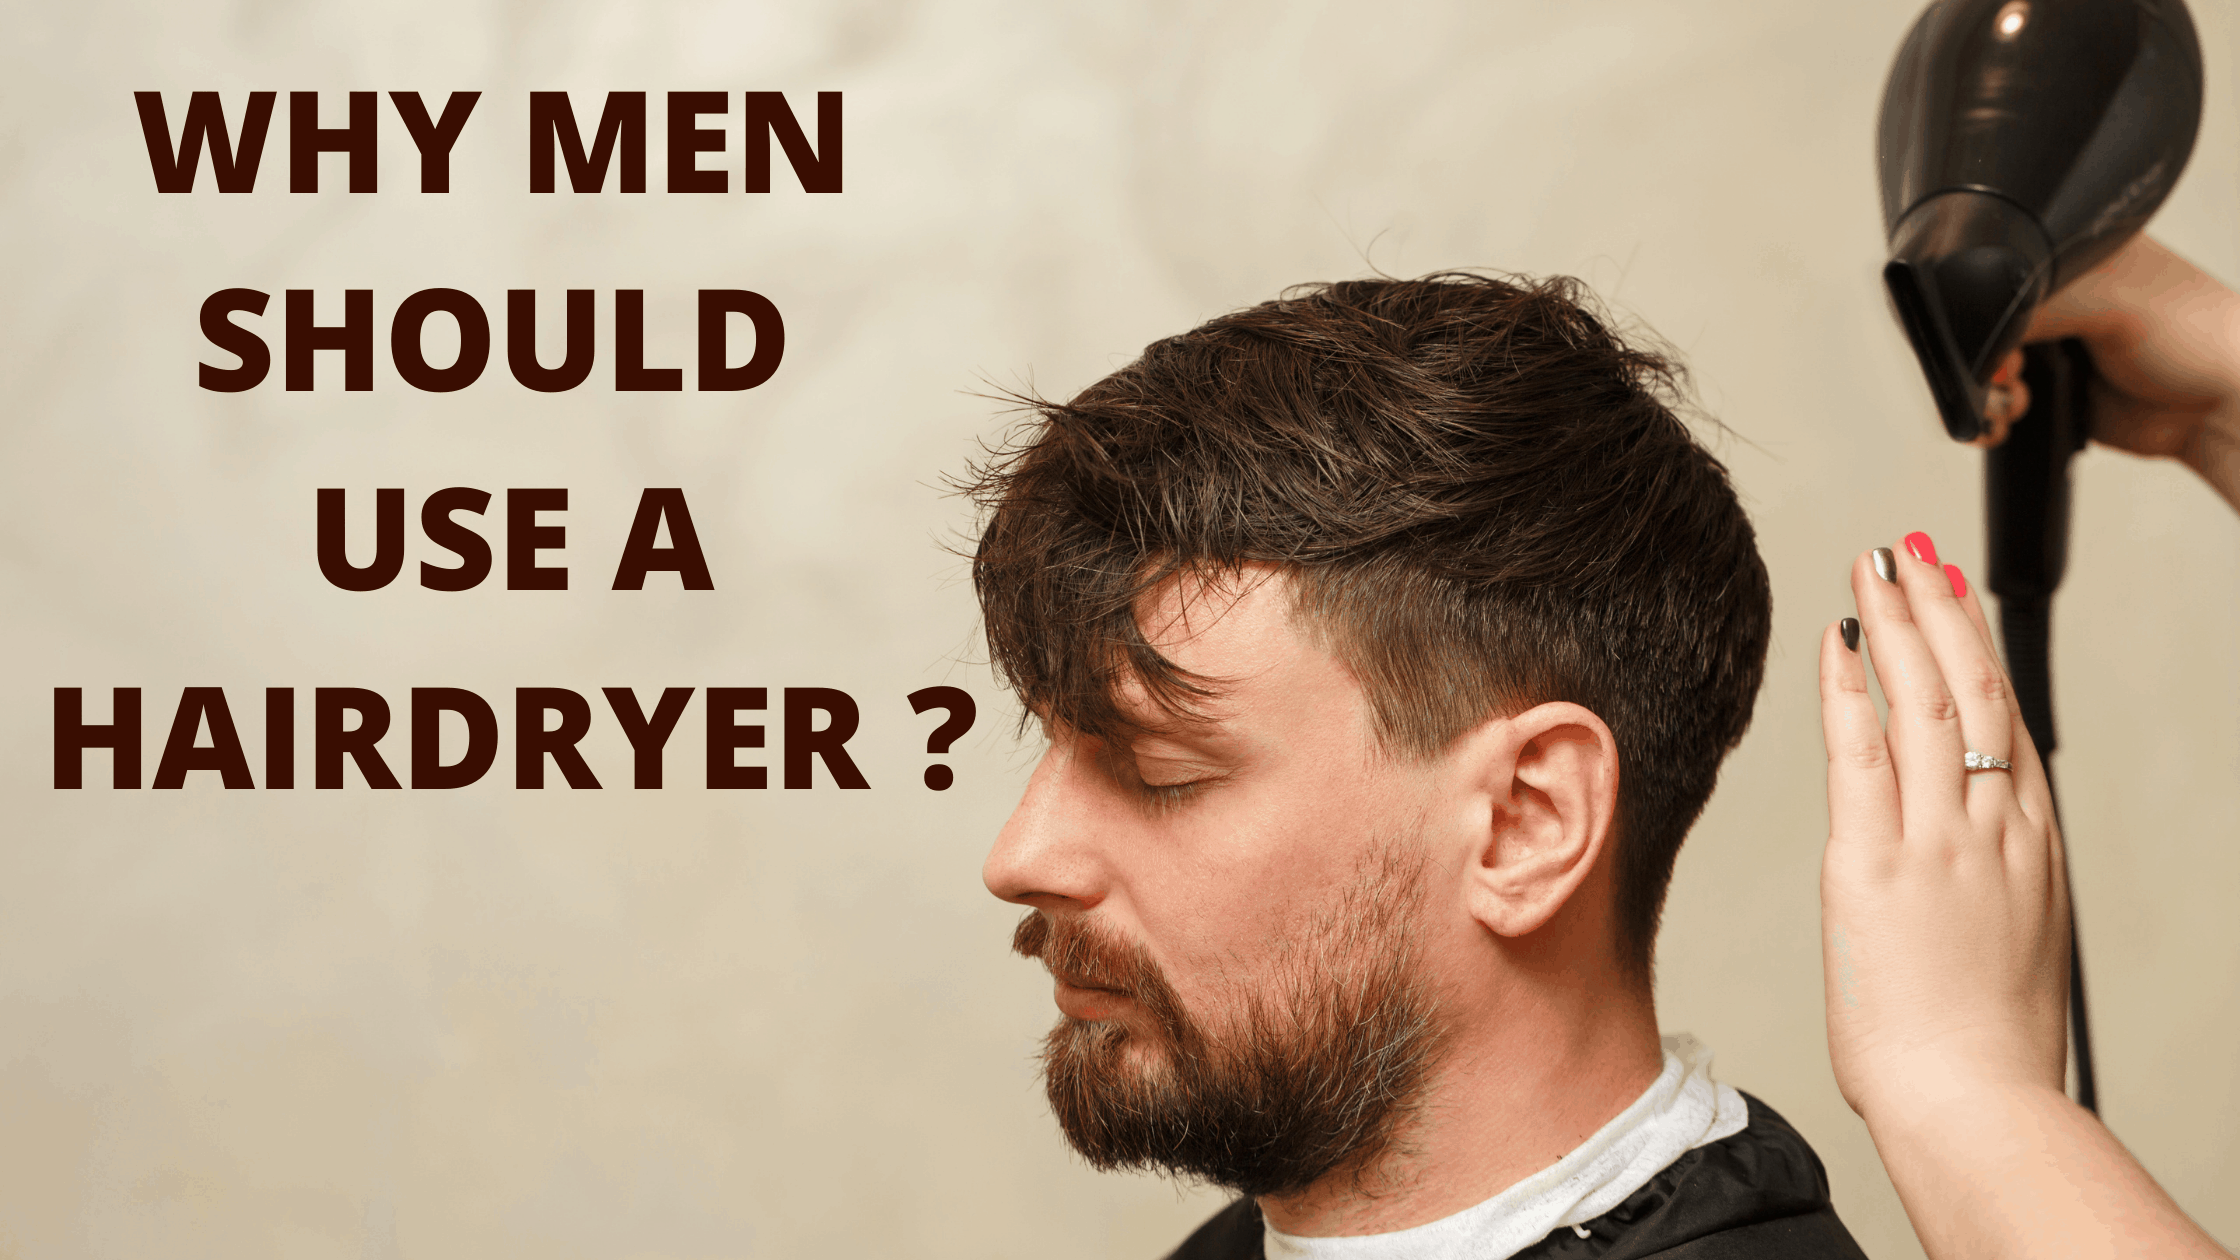 why men should use a hairdryer